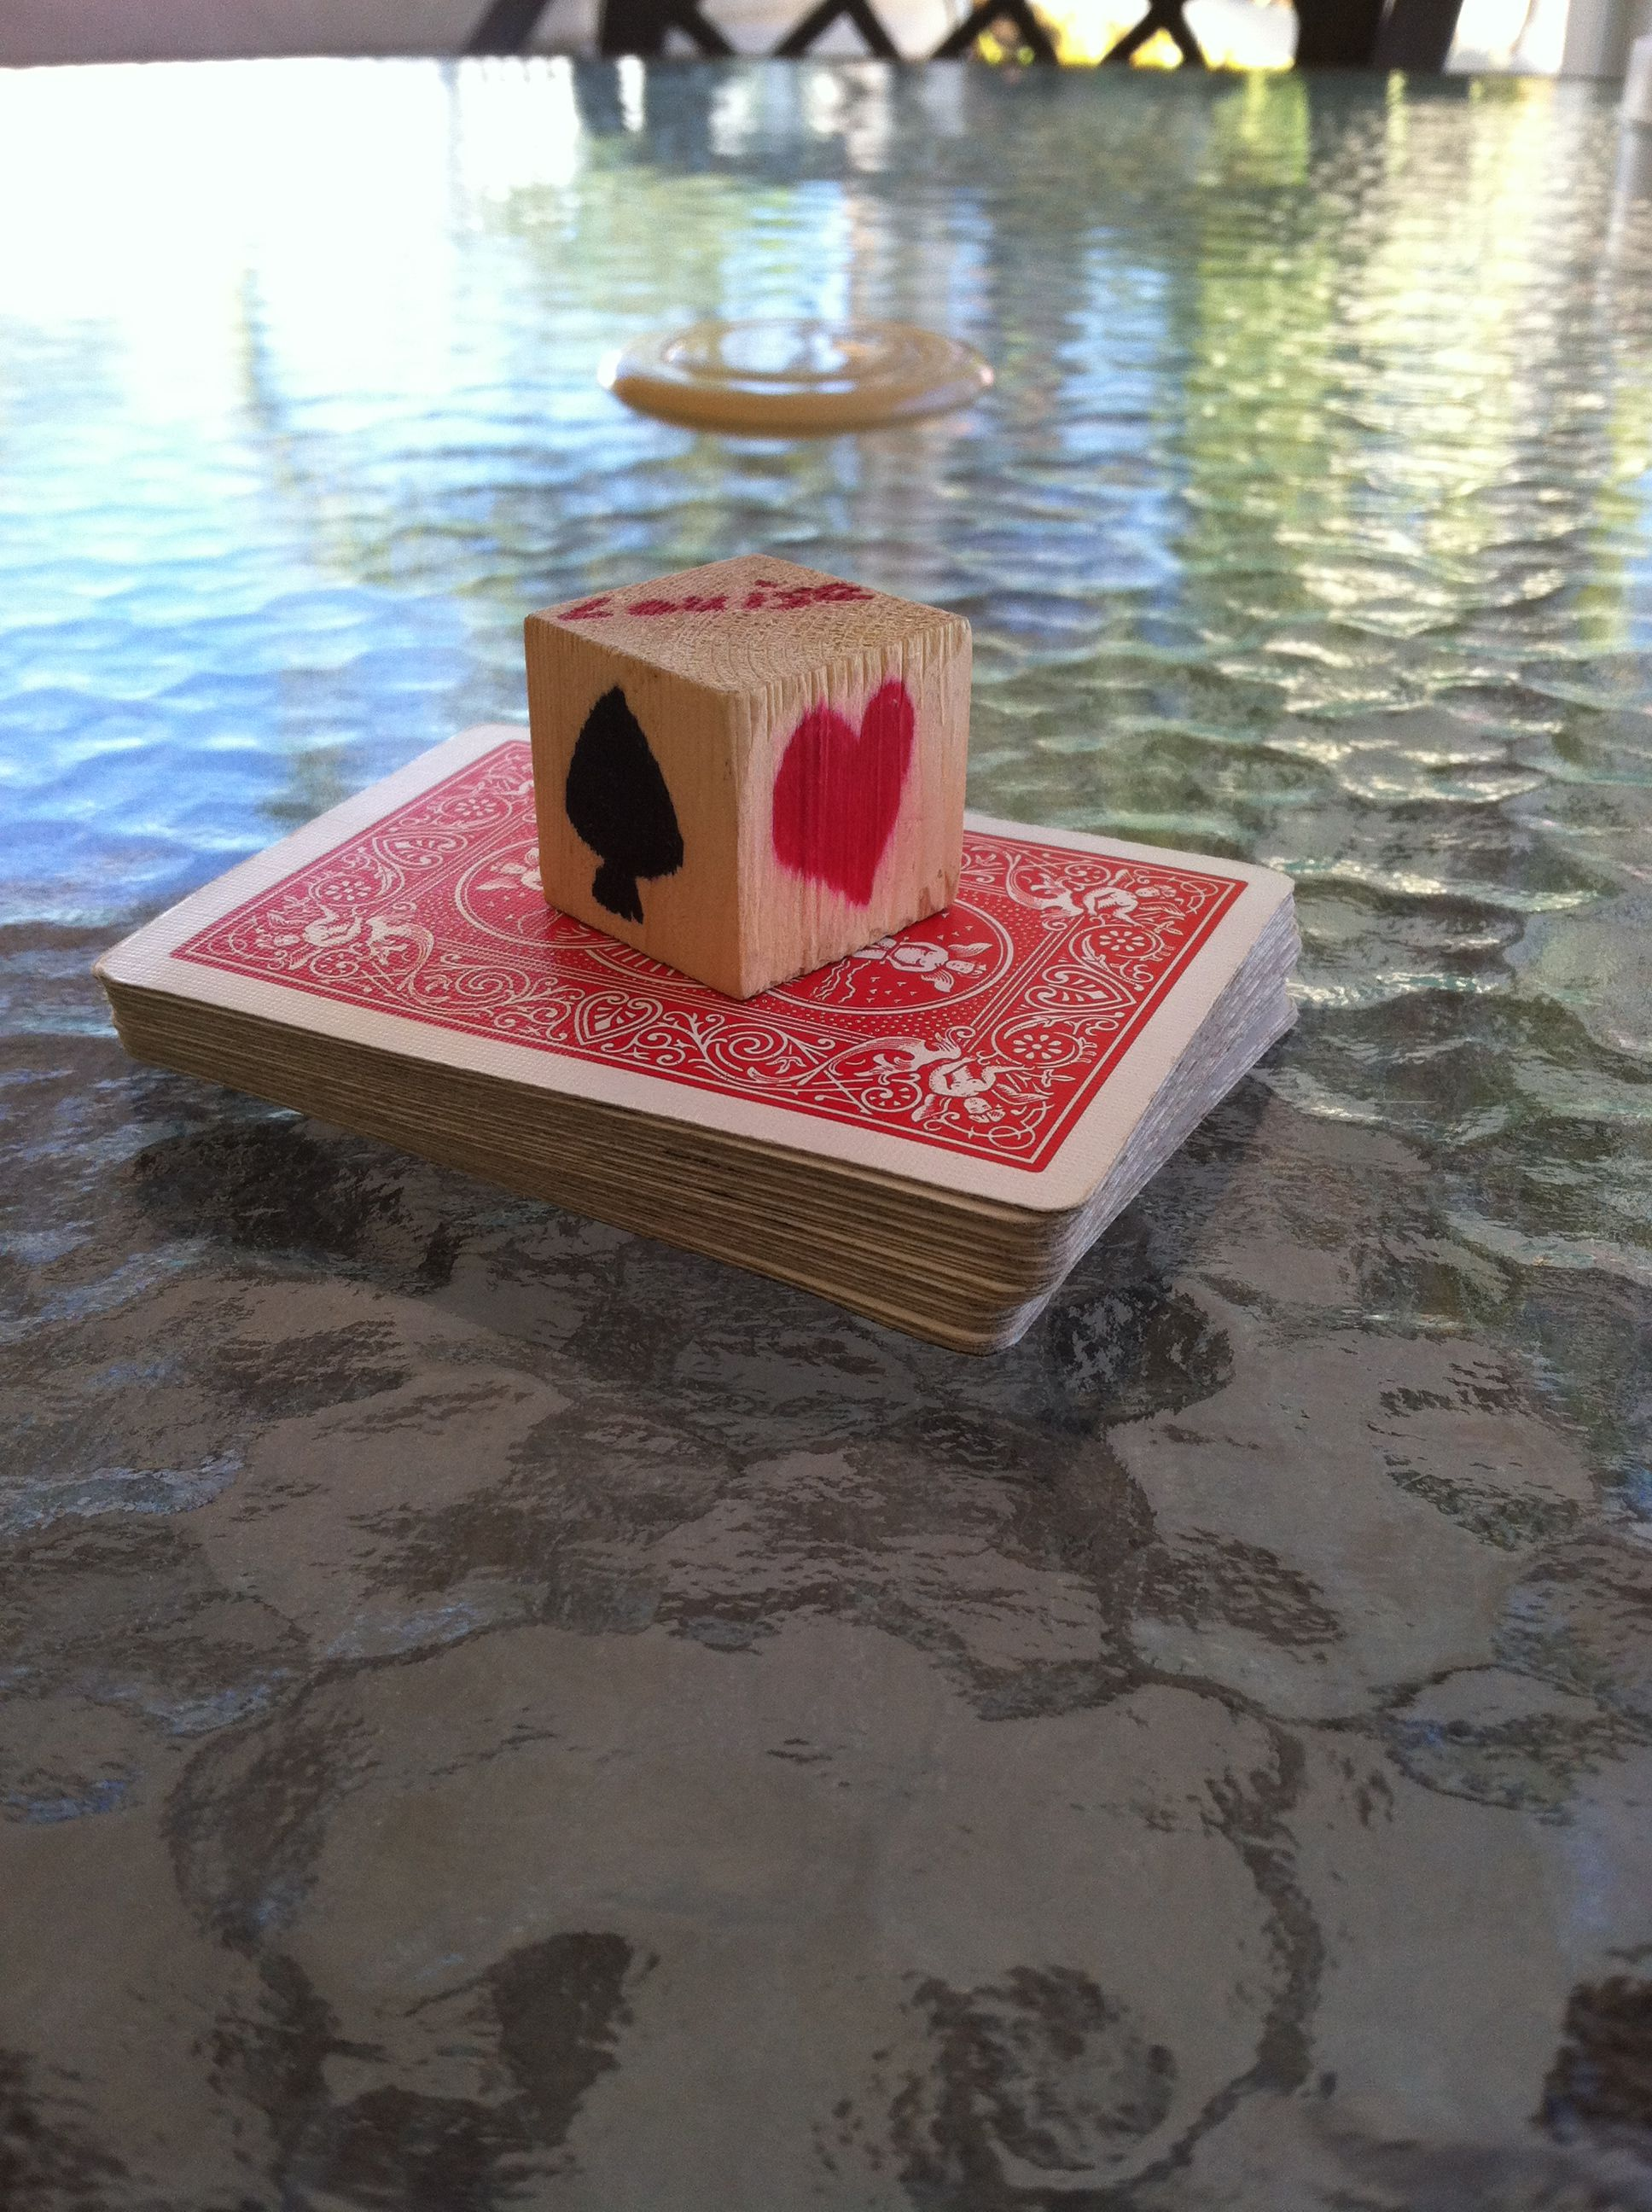 Euchre cubes. Made from small craft blocks to let the